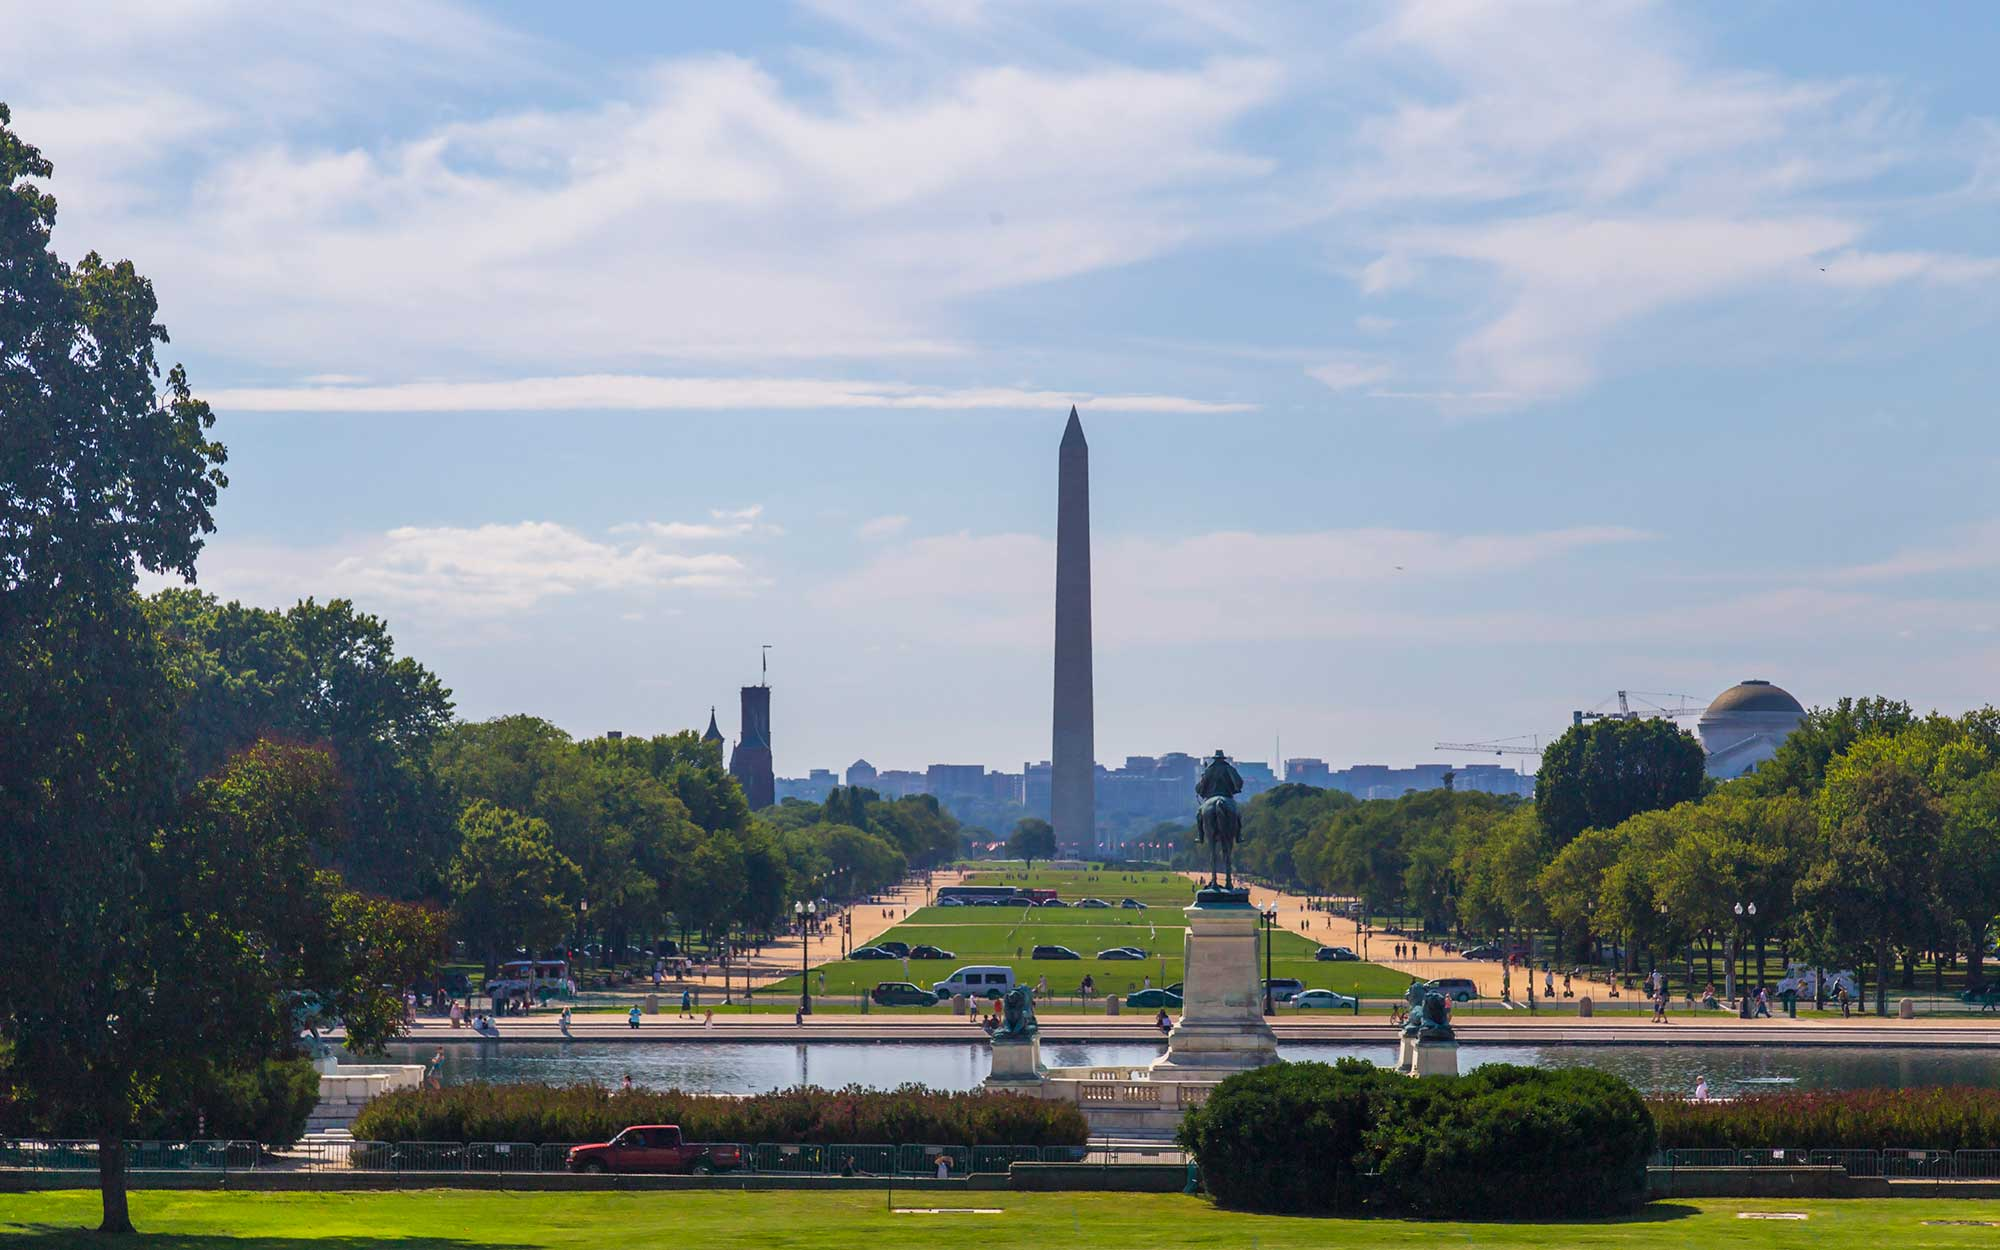 National Mall and Memorial Parks (Washington, D.C.)